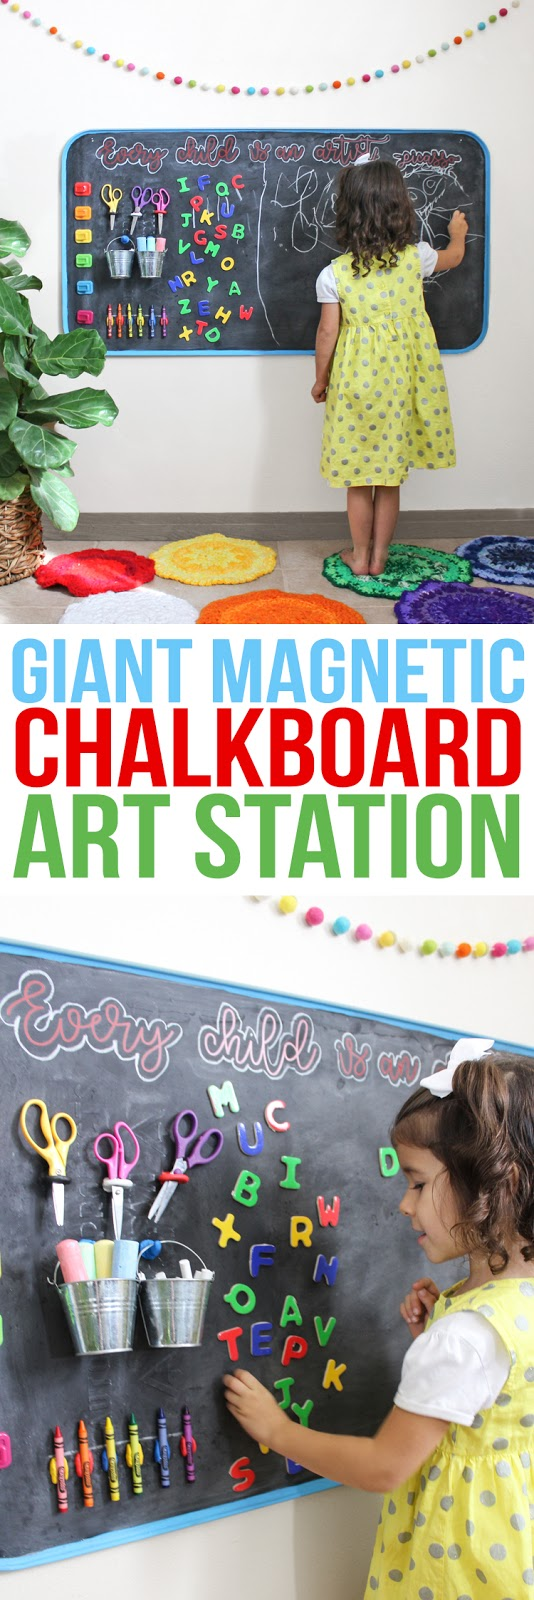 How to create an awesome child's art station. It's a large magnetic chalkboard with attached storage space for art supplies and the whole thing hangs on the wall. It would be the perfect addition to a playroom and is sure to encourage creativity in your budding little artist.